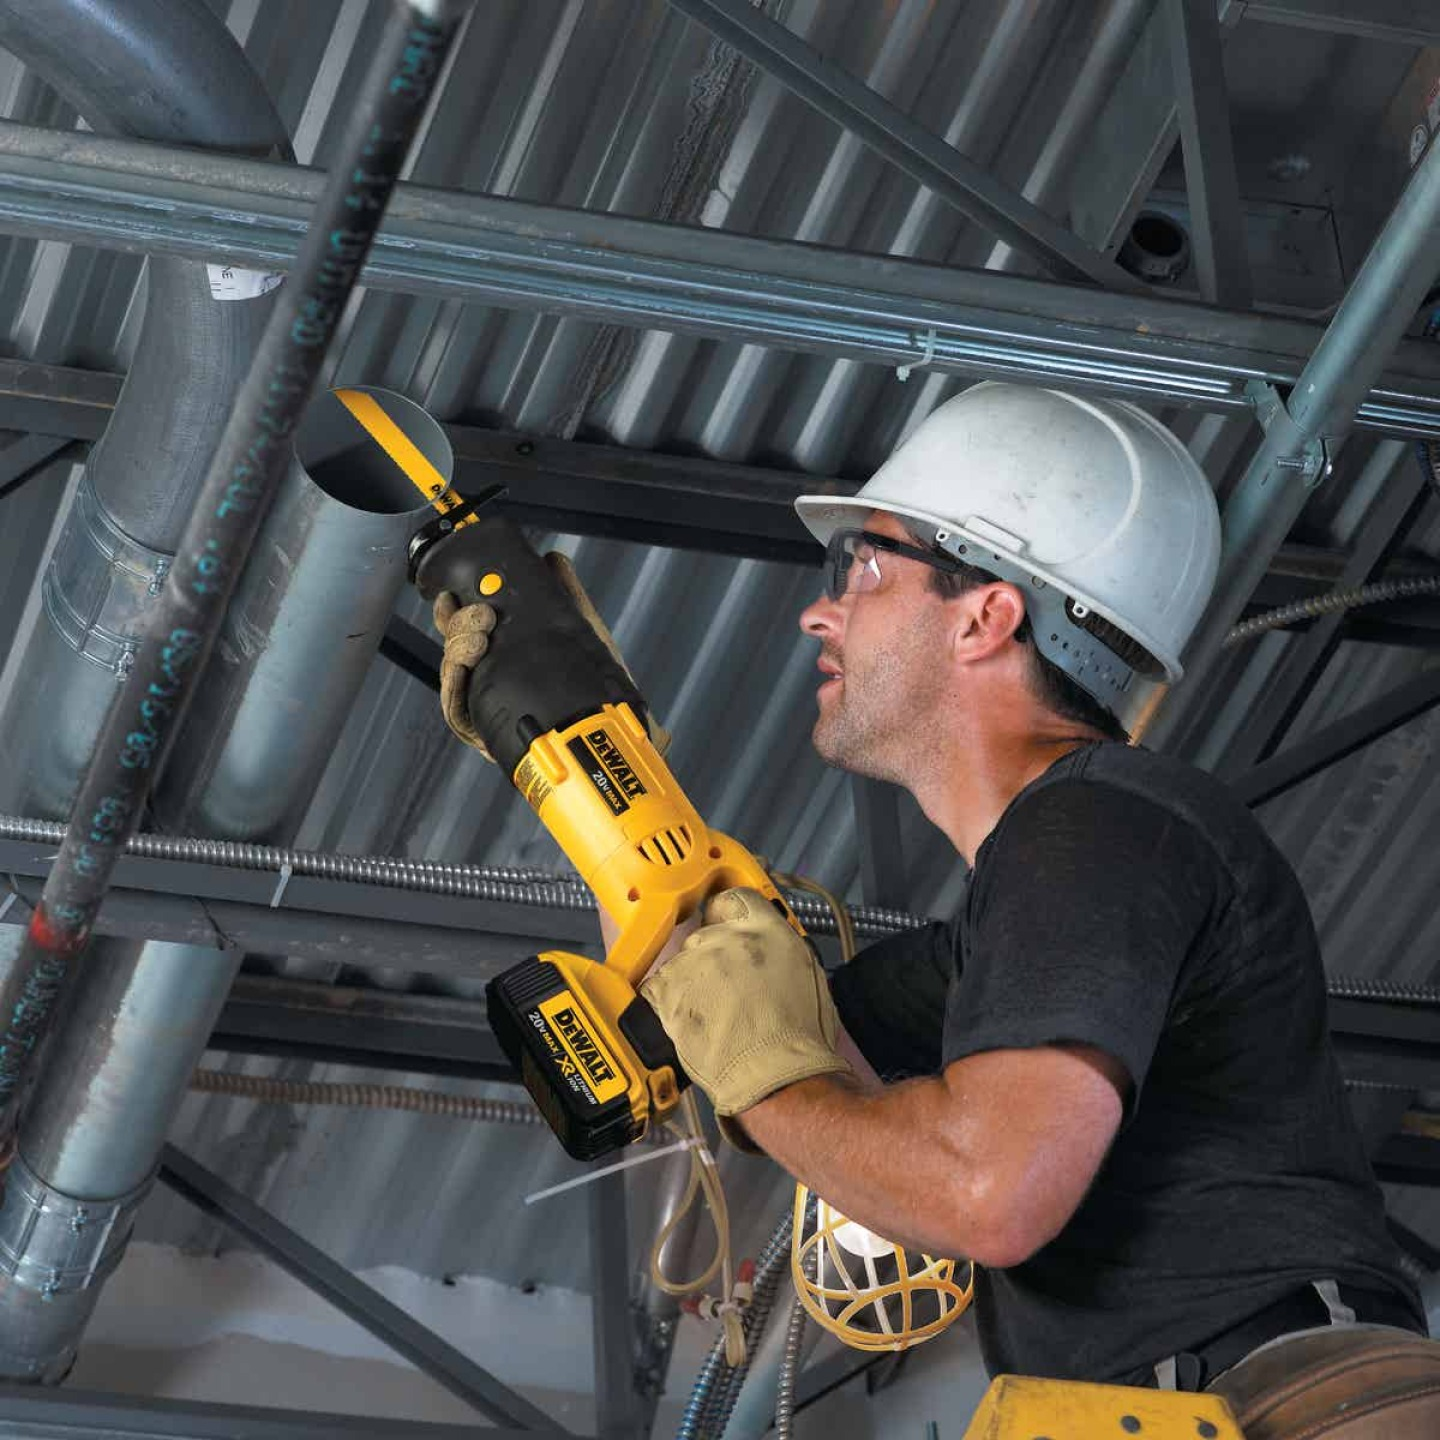 DeWalt 20 Volt MAX Lithium-Ion Cordless Reciprocating Saw Kit Image 5